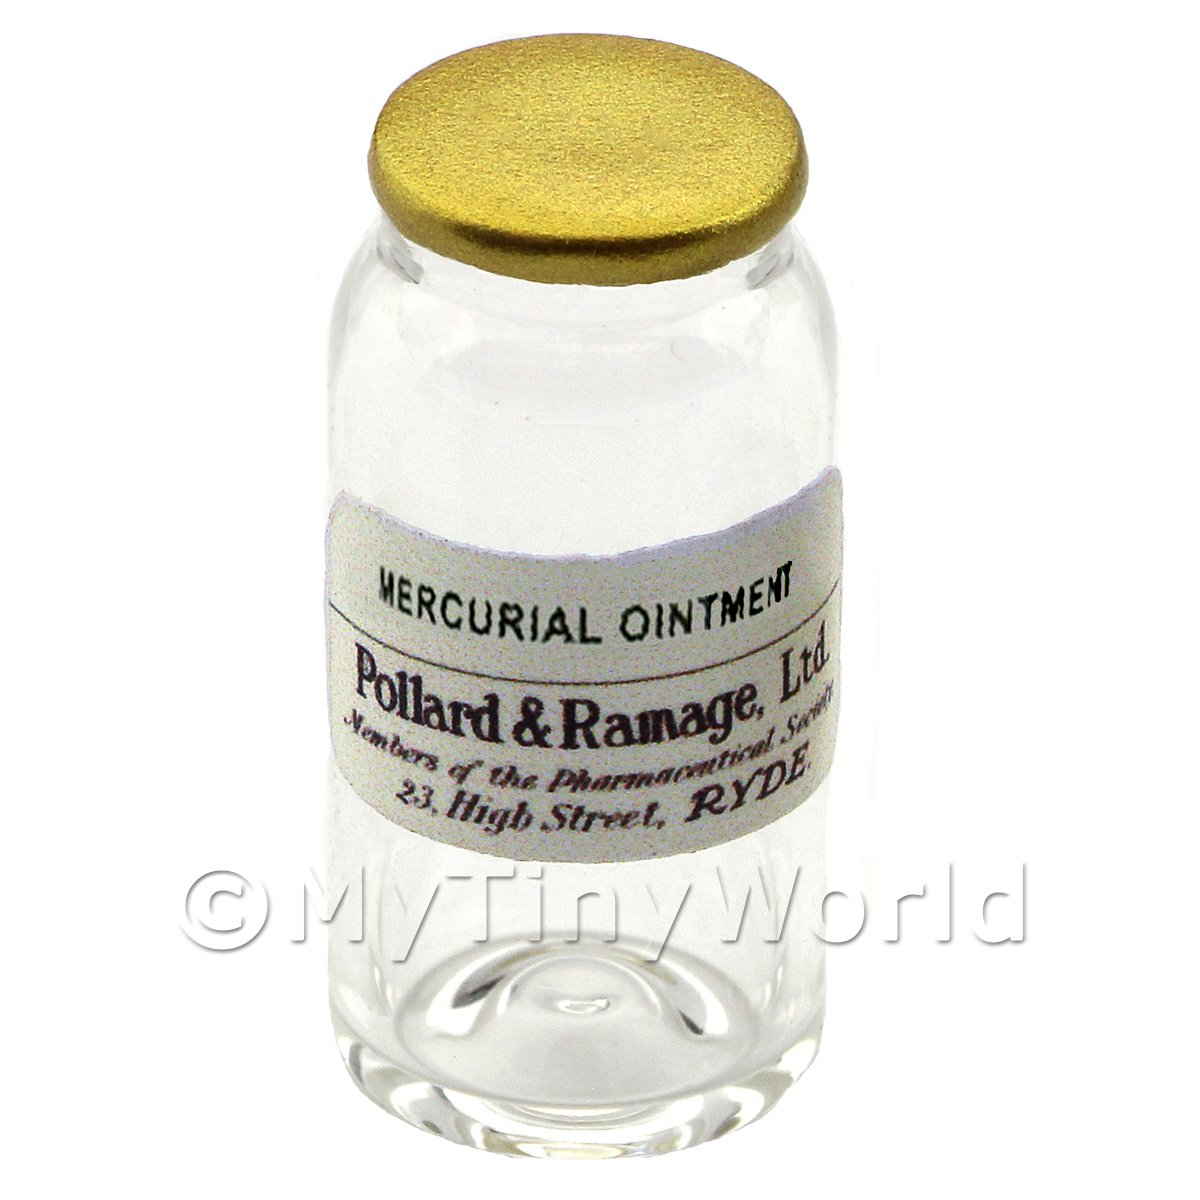 Miniature Mercurial Ointment Glass Apothecary Bulk Jar